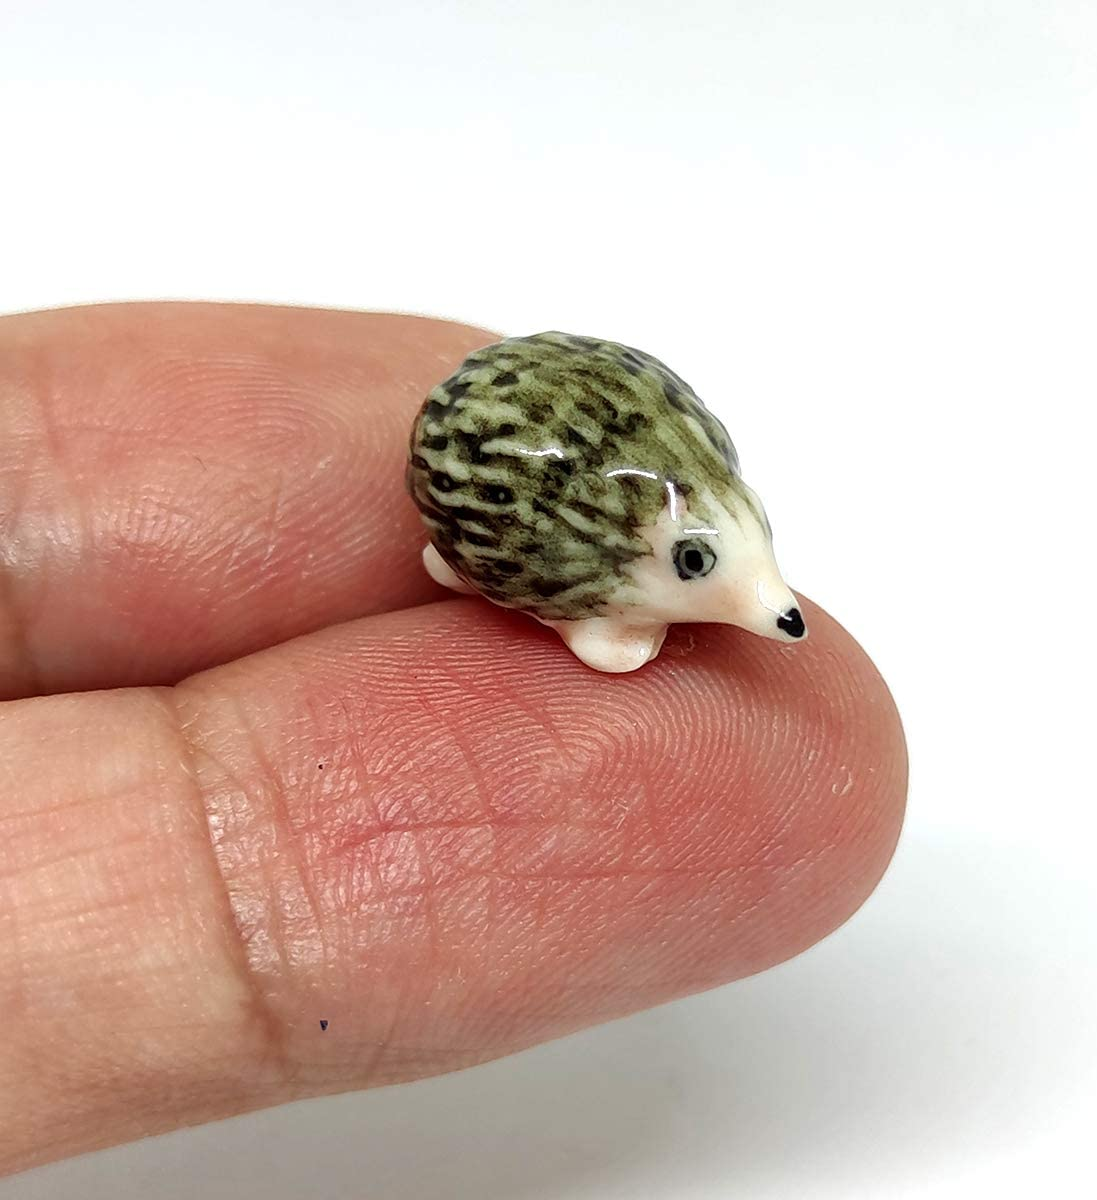 SSJSHOP Baby Hedgehog Micro Tiny Figurines Ceramic Hand Painted Animals Collectible Small Gift Home Decor